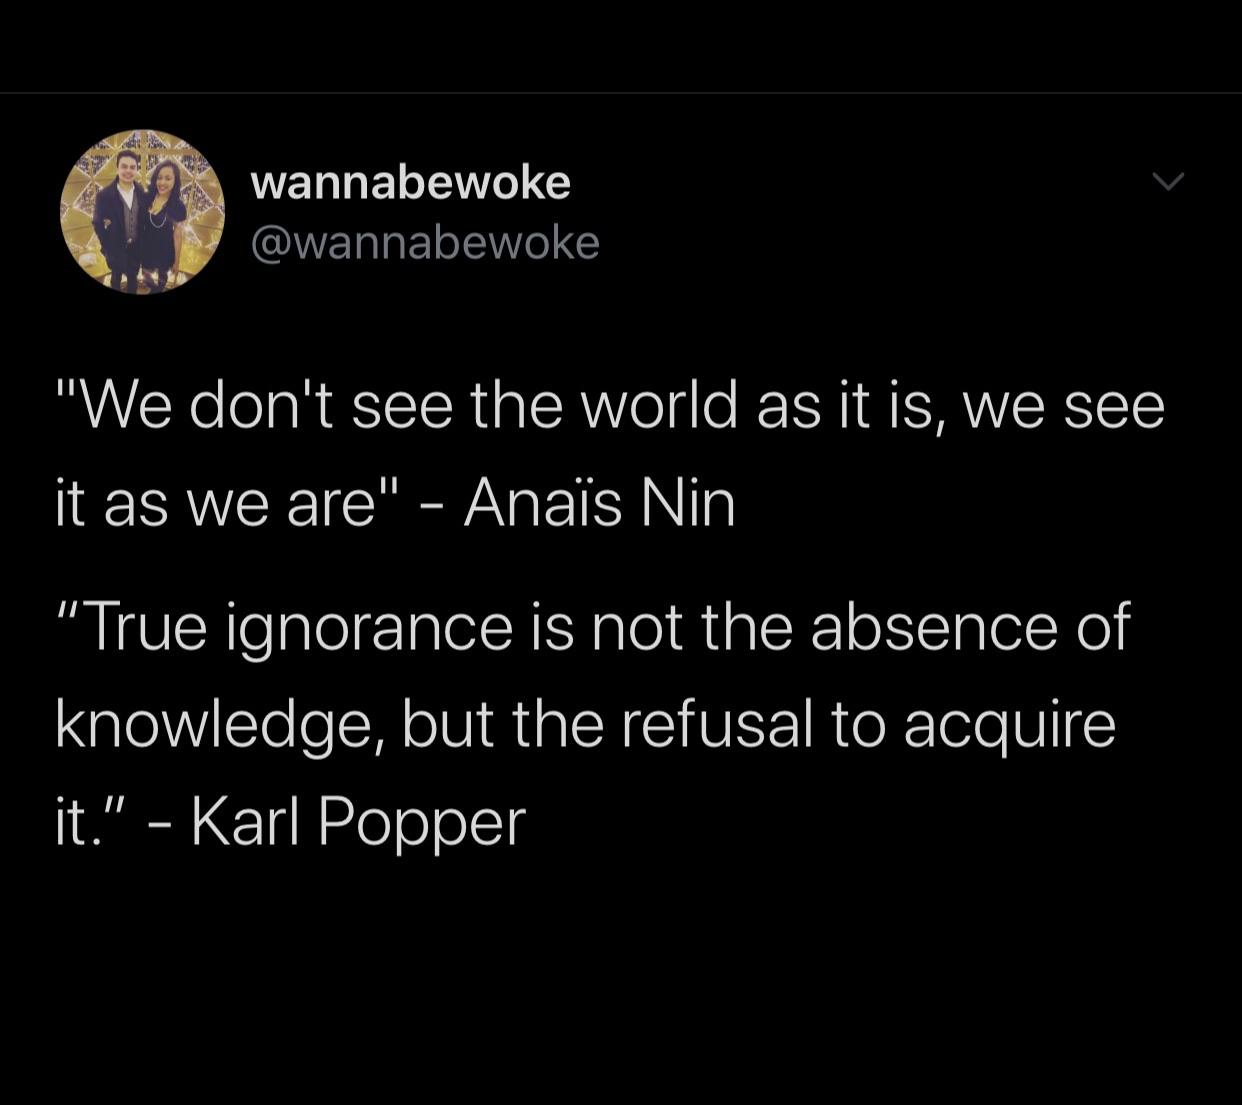 ". wannabewoke ' {b @wannabewoke I '. ""We don't see the world as it is, we see it as we are"" — Anai's Nin ""True ignorance is not the absence of knowledge, but the refusal to acquire it."" — https://inspirational.ly"